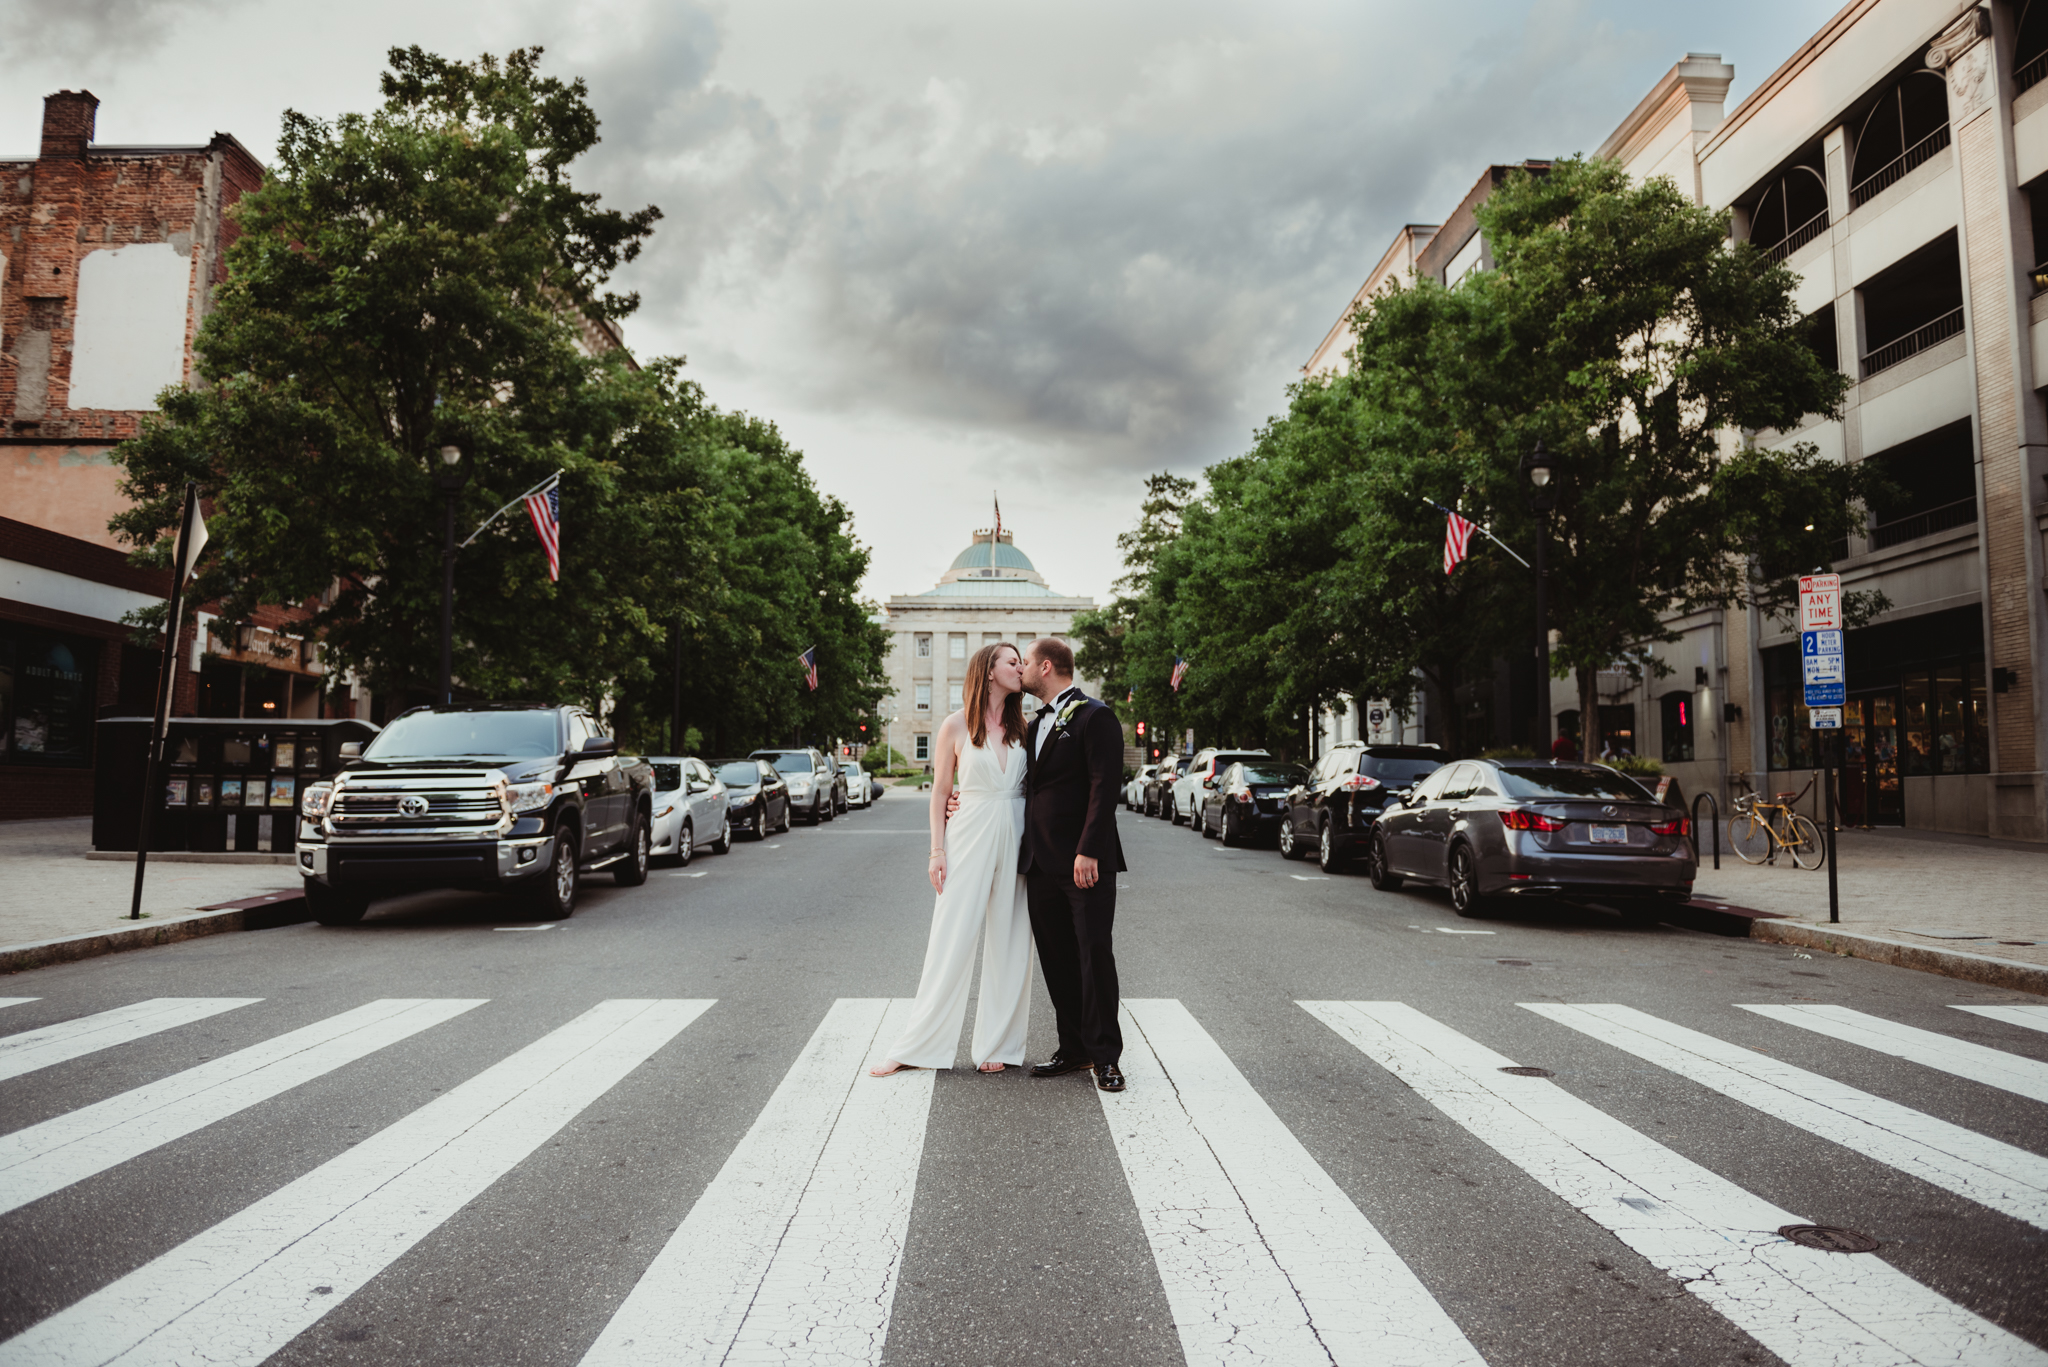 Raleigh-wedding-photographer-bride-and-groom-portraits-fayetville-capital-building-rose-trail-images.jpg